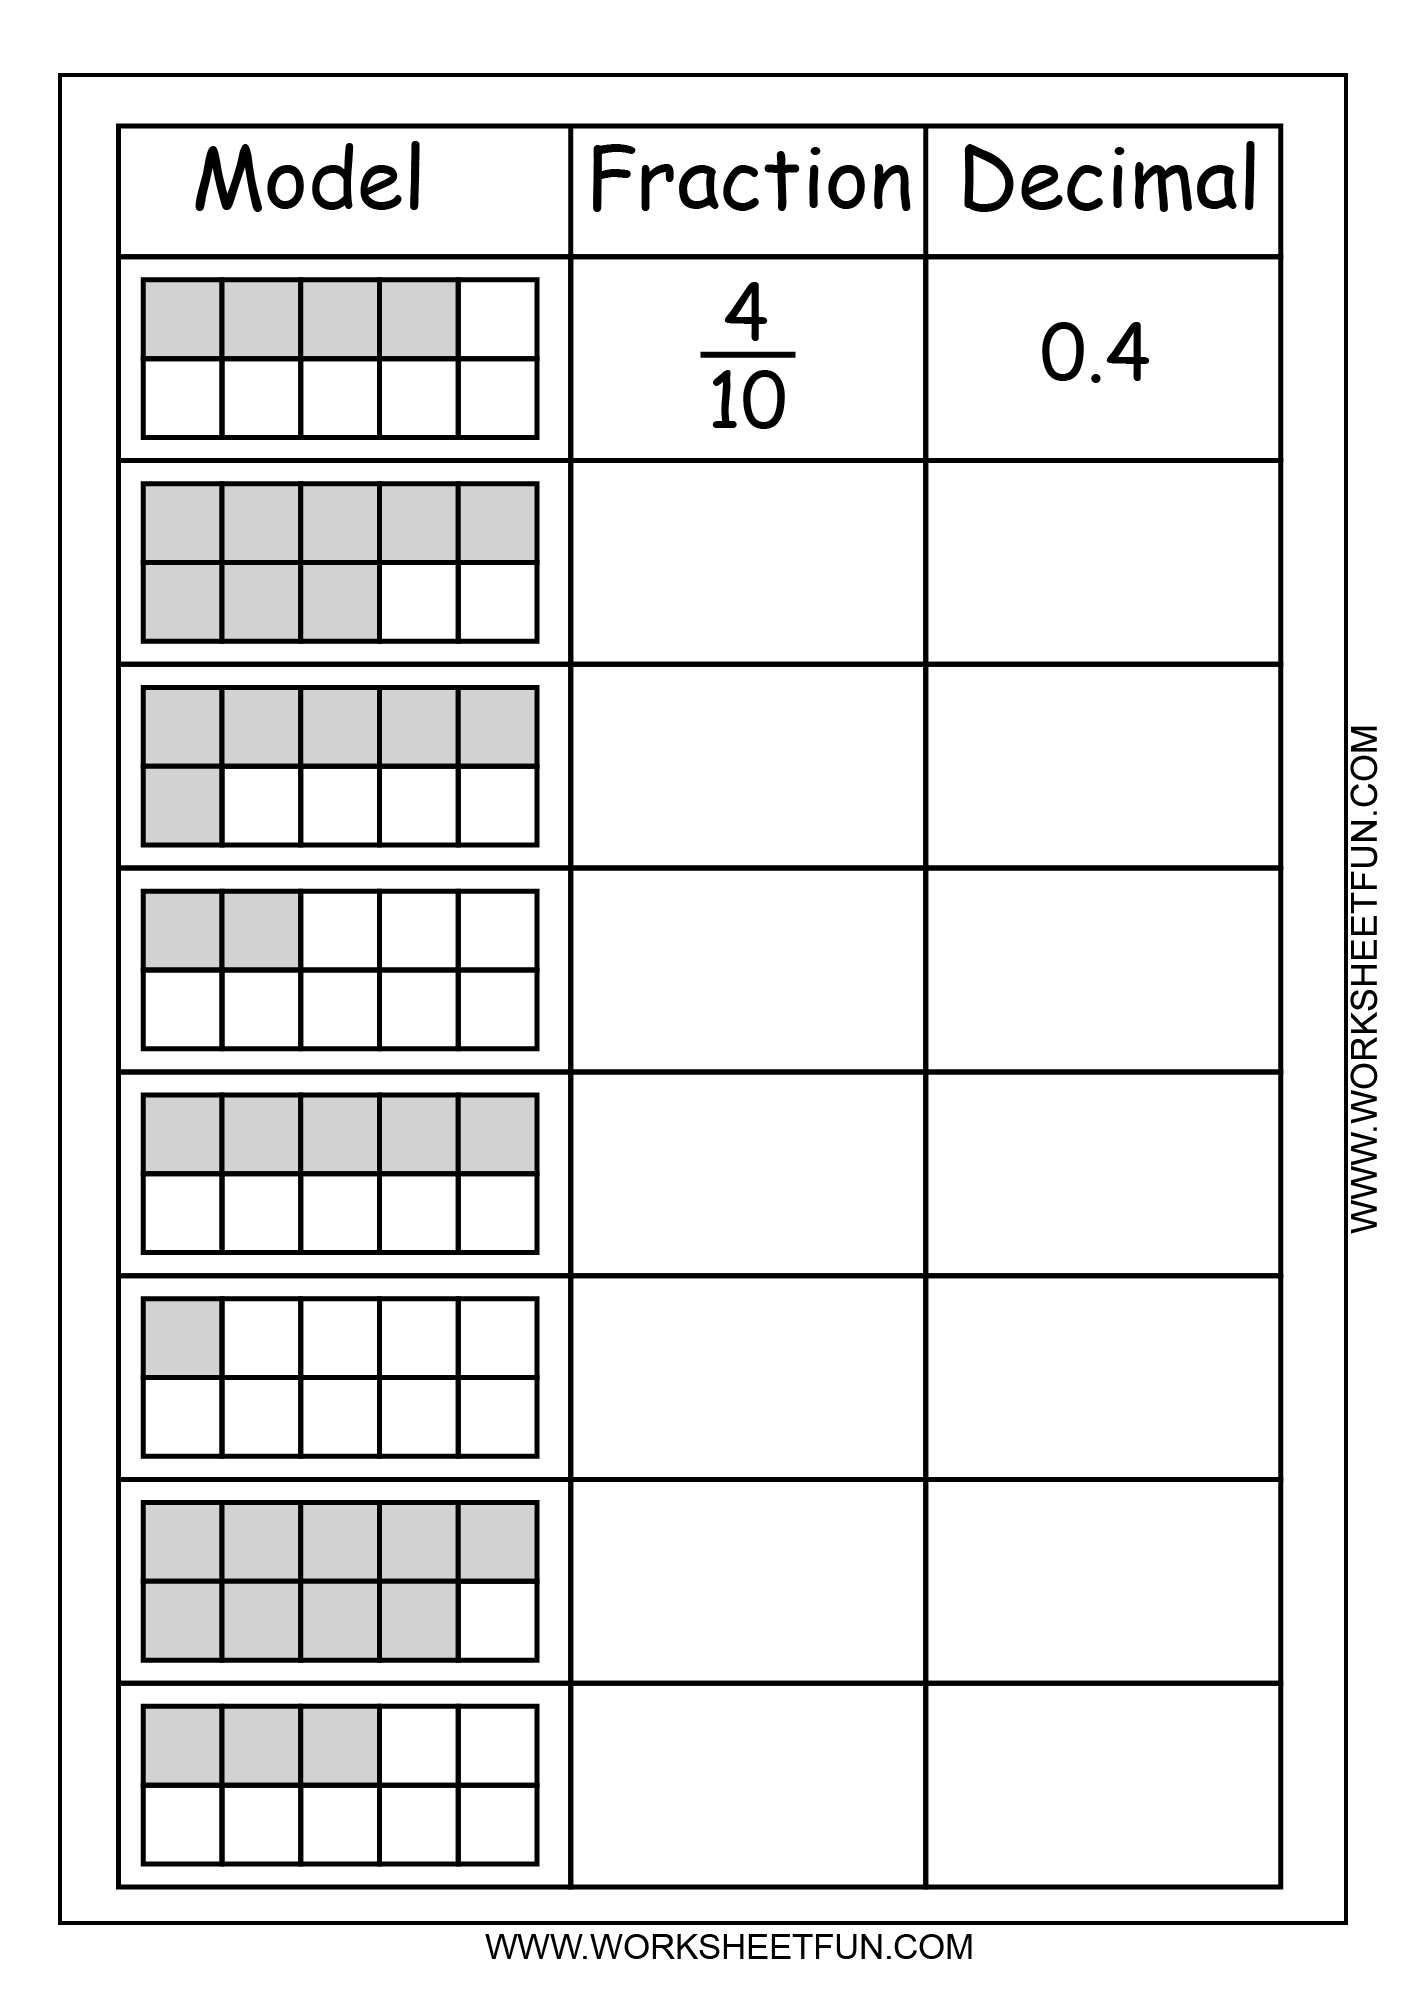 Blank Fraction Number Line Worksheet